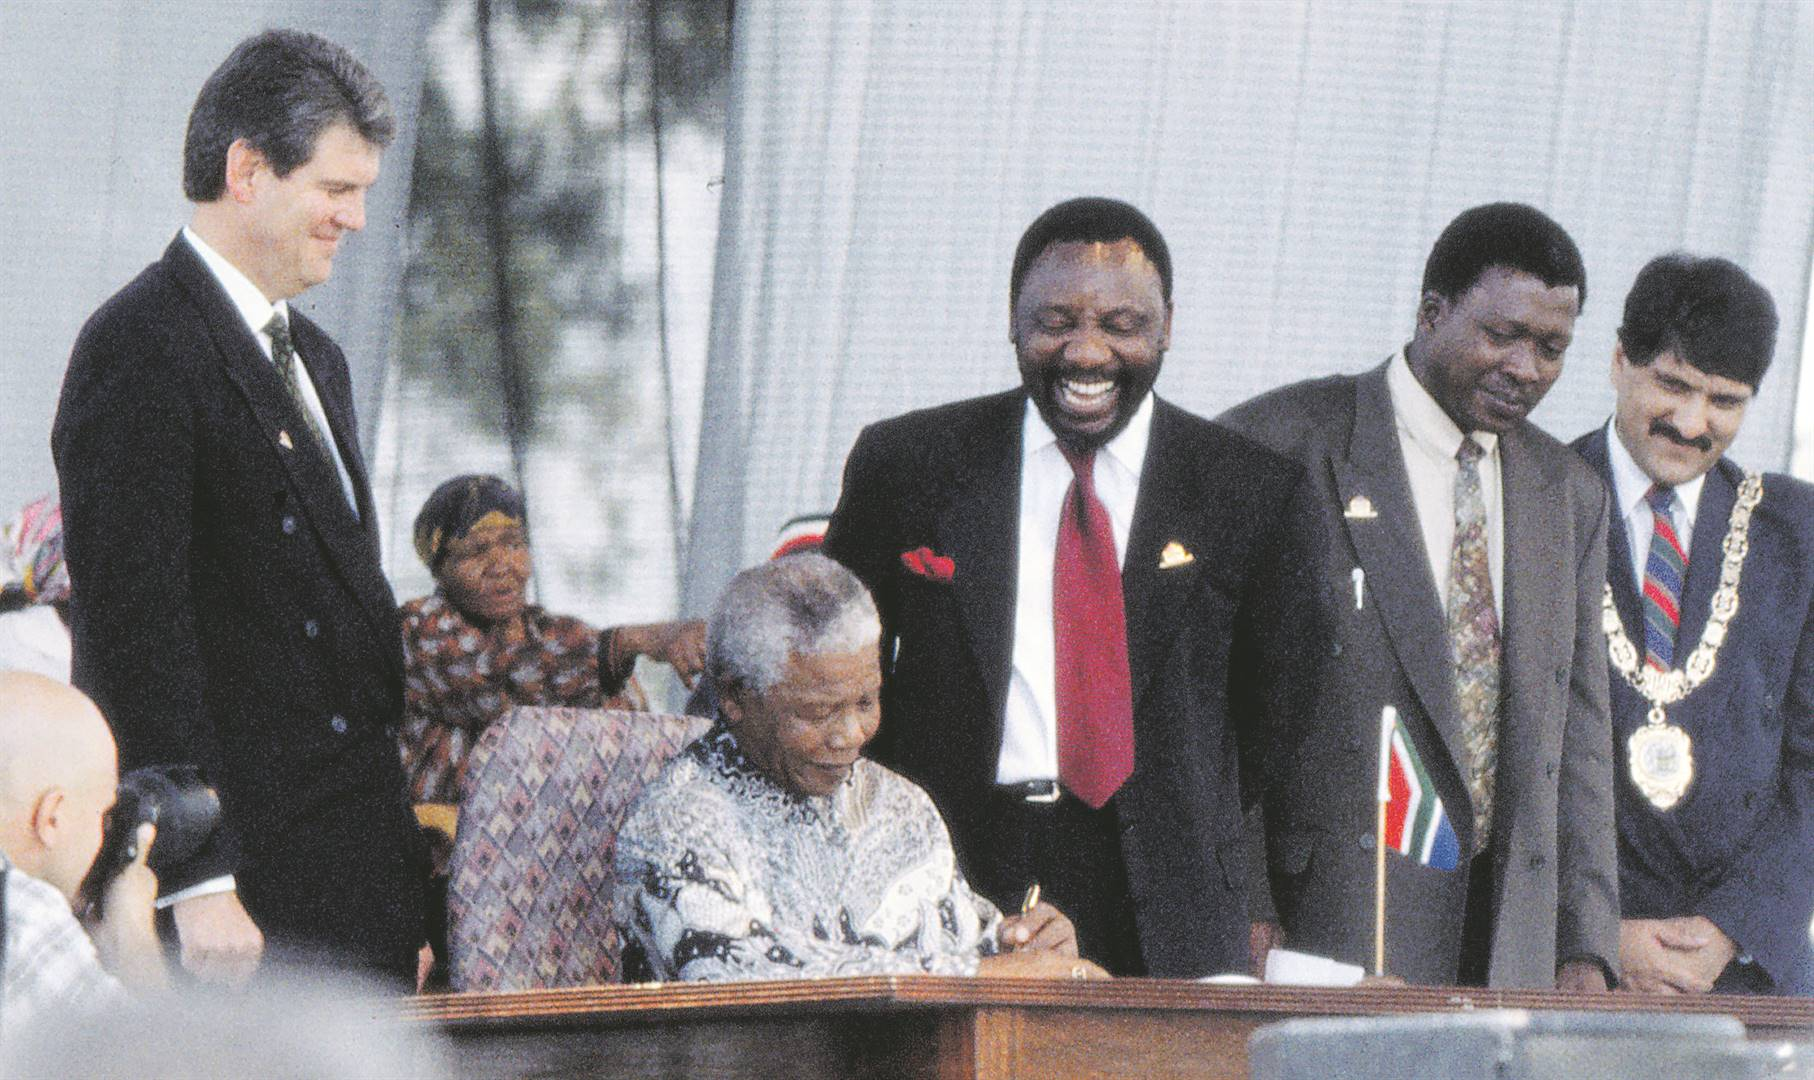 Nelson Mandela and Cyril Ramaphosa at the signing of the Constitution on 10 December 1996. (Media24)